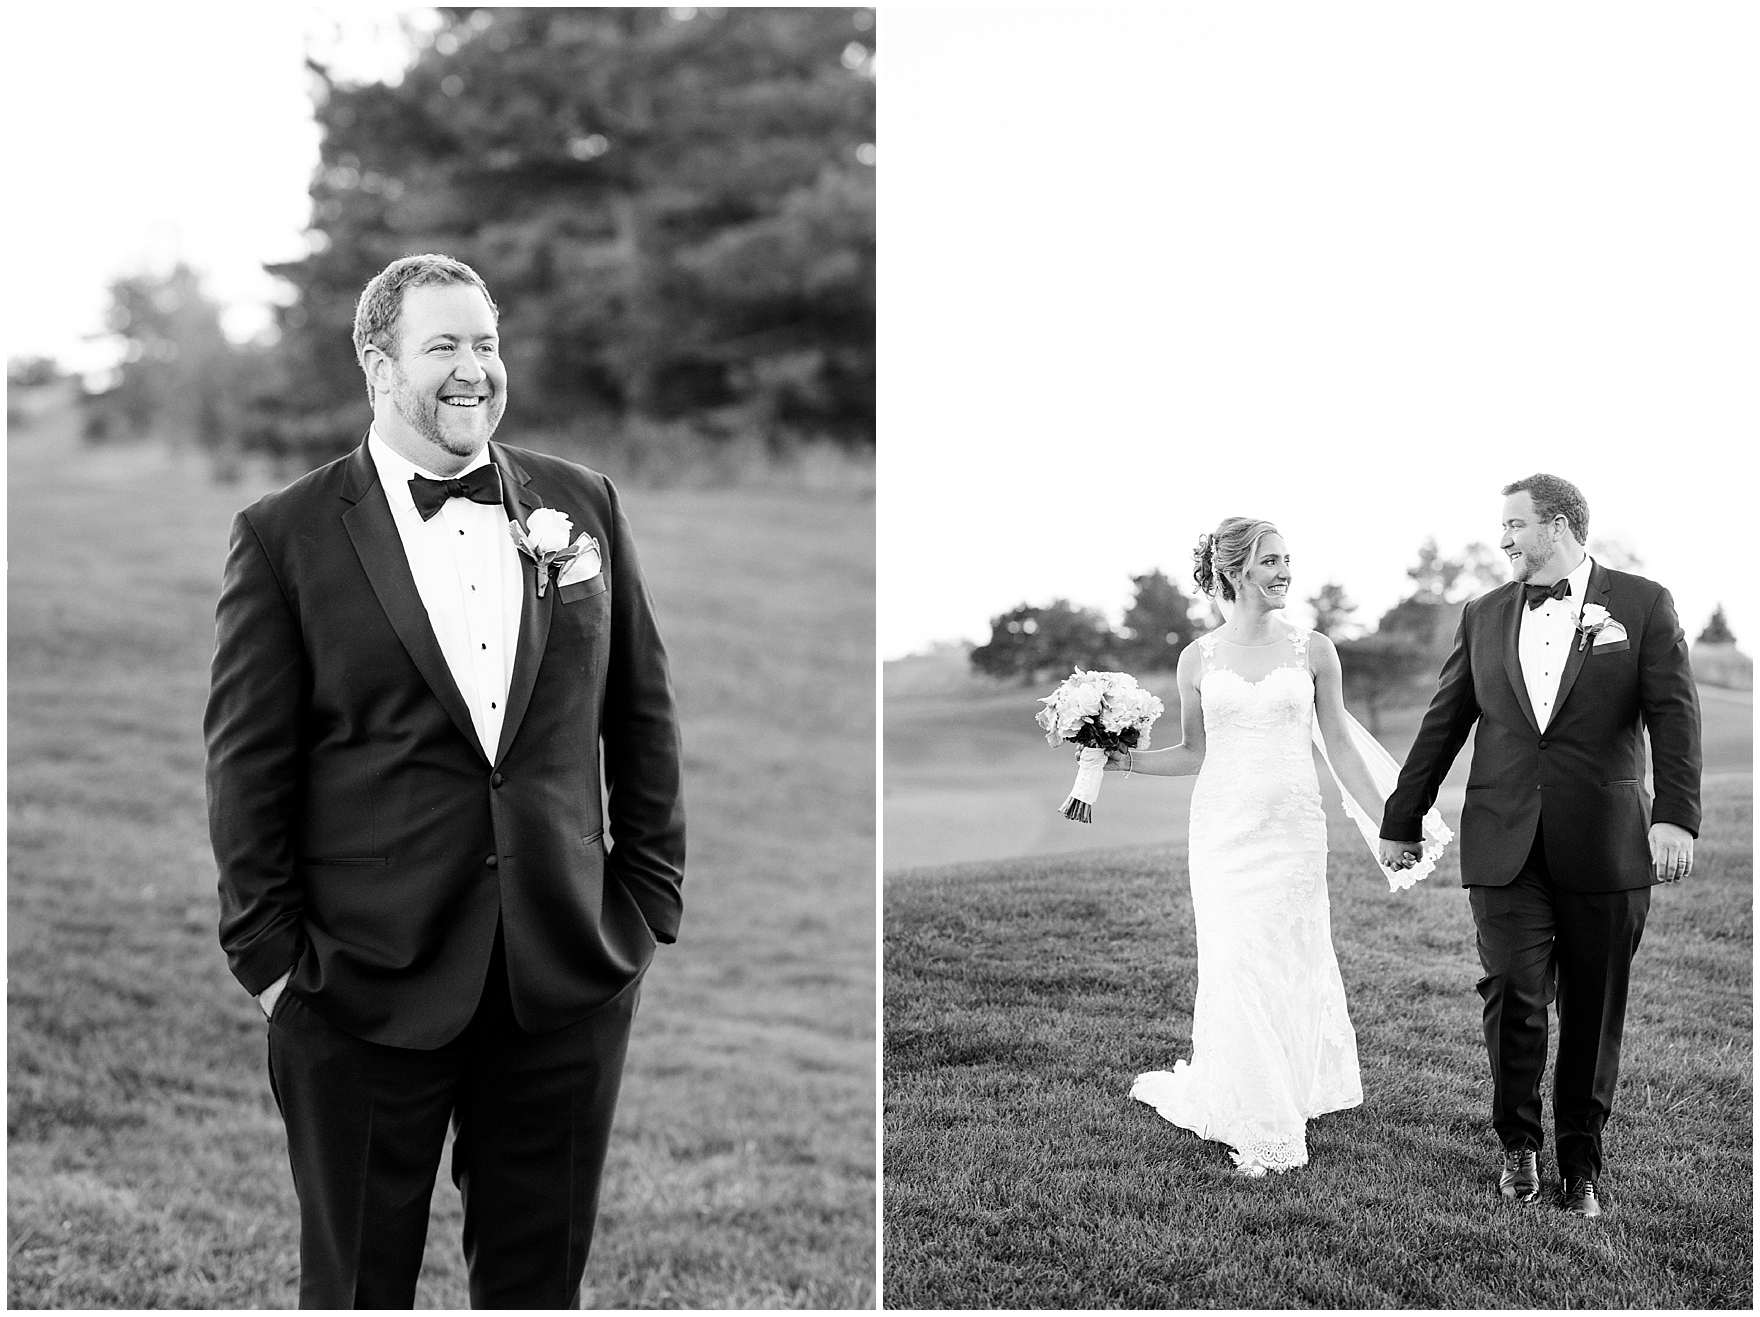 The bride and groom pose for portraits at twilight during a Glen Club Glenview Illinois wedding.